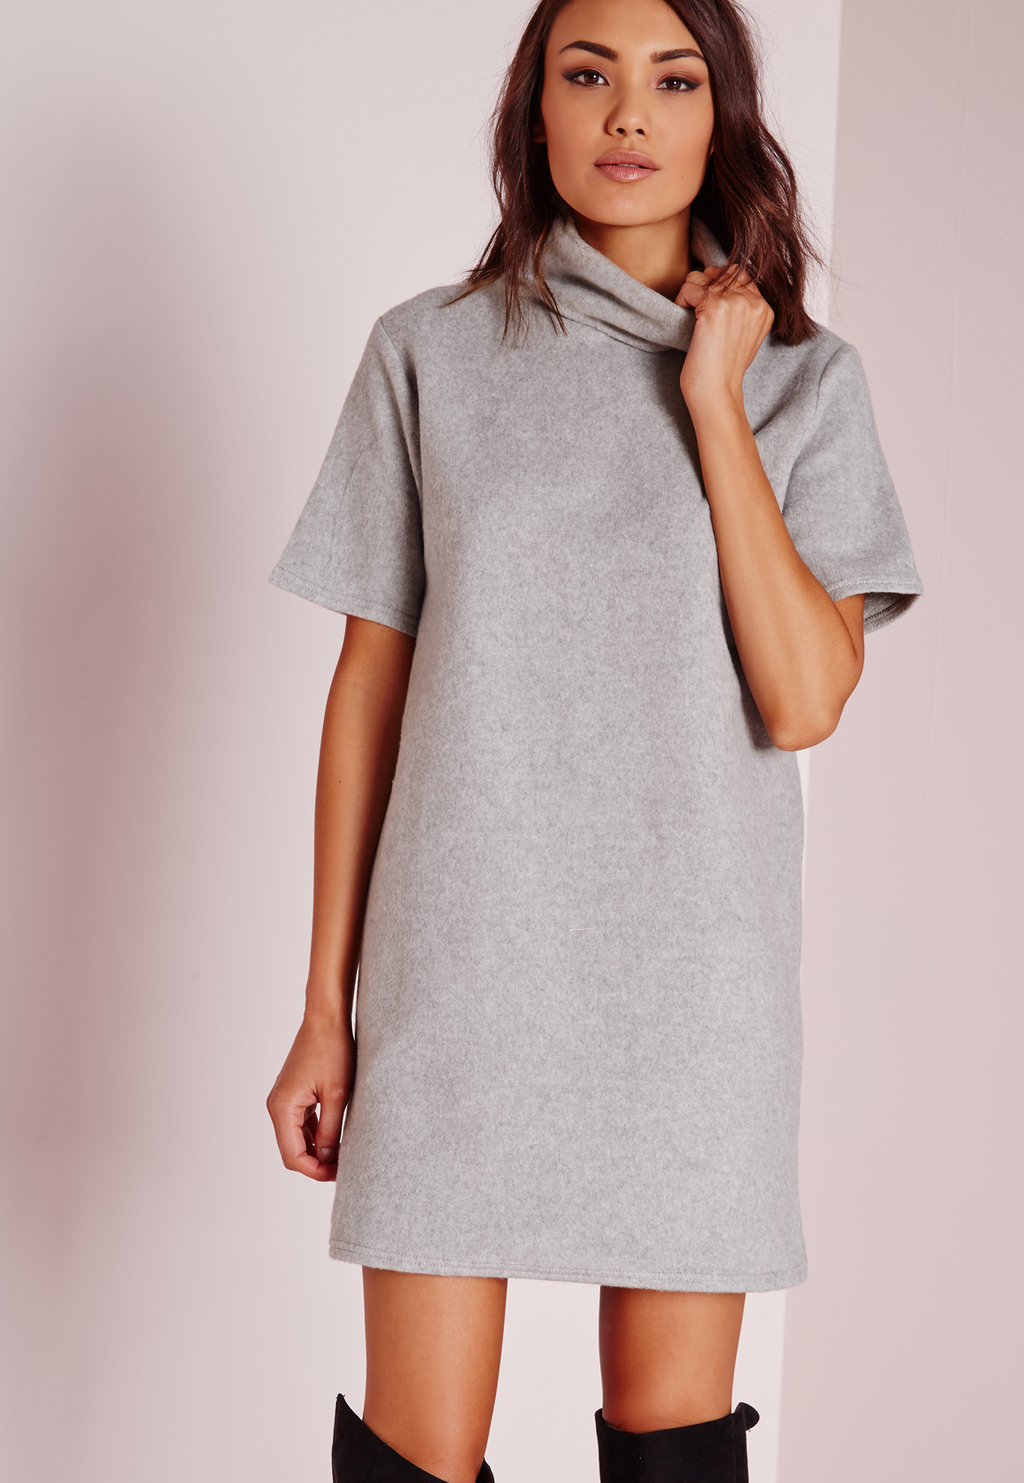 Roll Neck Short Sleeve Fleecy Jumper Dress Grey, Grey - style: jumper dress; length: mini; neckline: high neck; predominant colour: light grey; occasions: casual; fit: straight cut; fibres: polyester/polyamide - stretch; sleeve length: short sleeve; sleeve style: standard; texture group: knits/crochet; pattern type: knitted - other; pattern size: light/subtle; pattern: marl; season: s/s 2016; wardrobe: basic